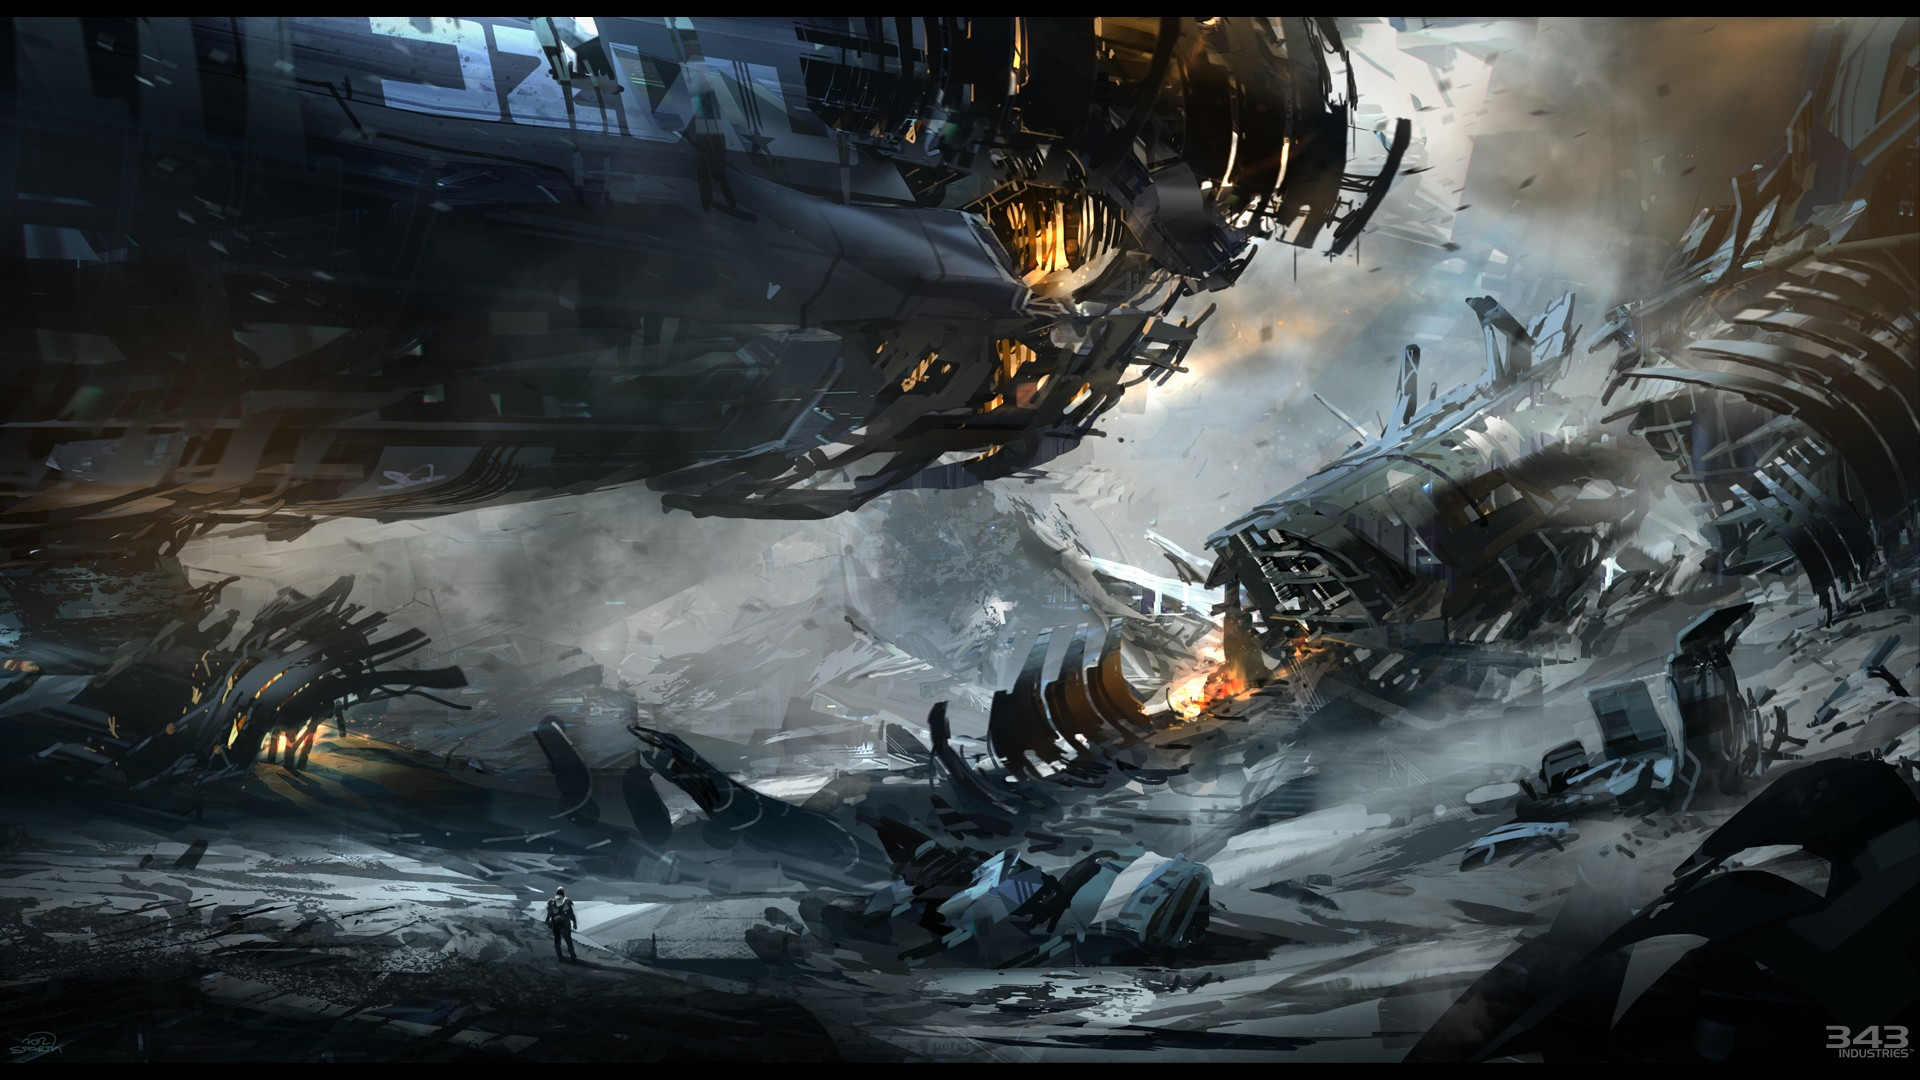 Halo 4 Concept Art wallpaper 246178 1920x1080